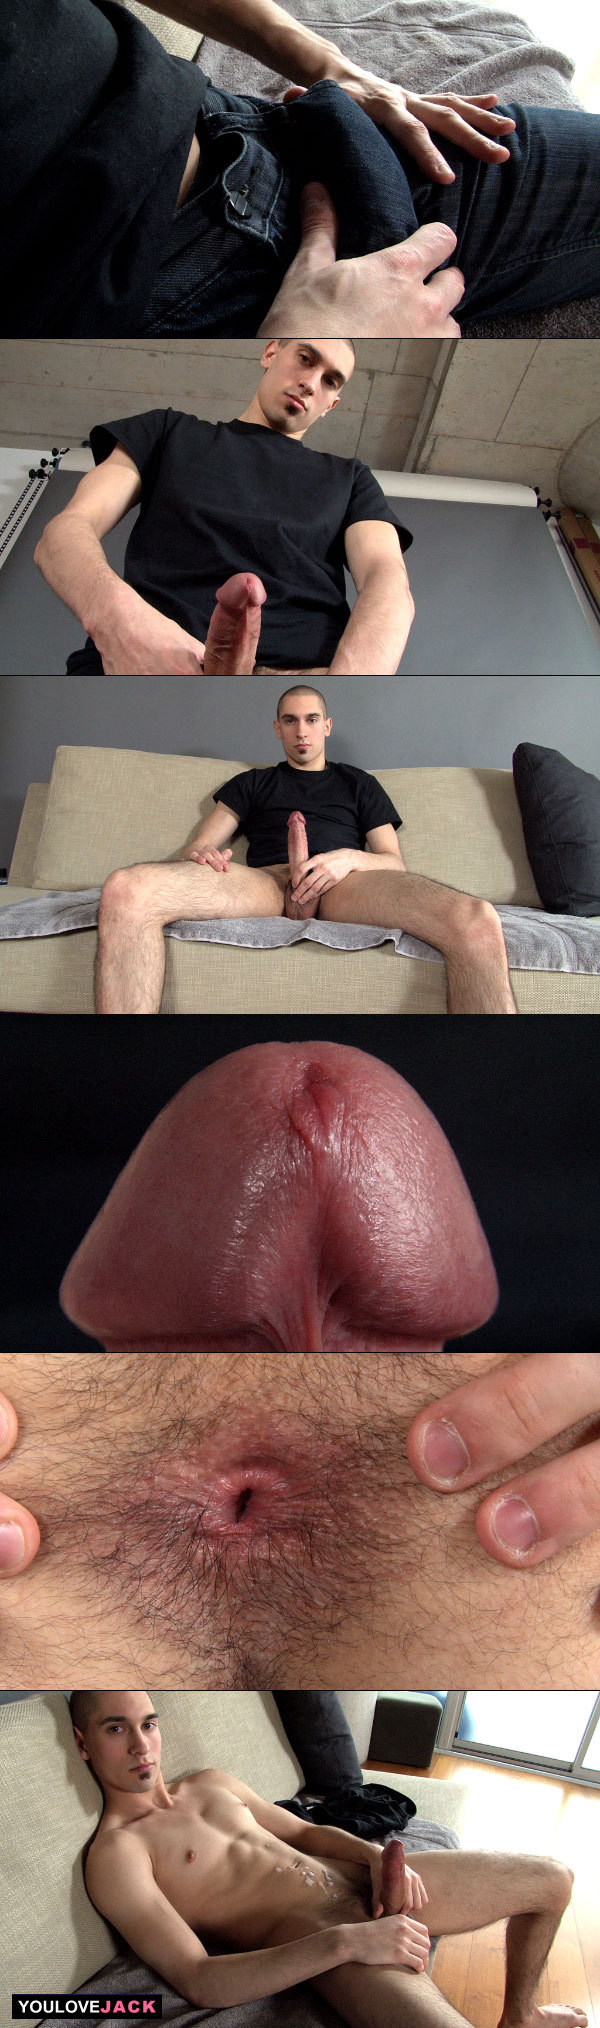 Straight Guy Shows Off His Asshole